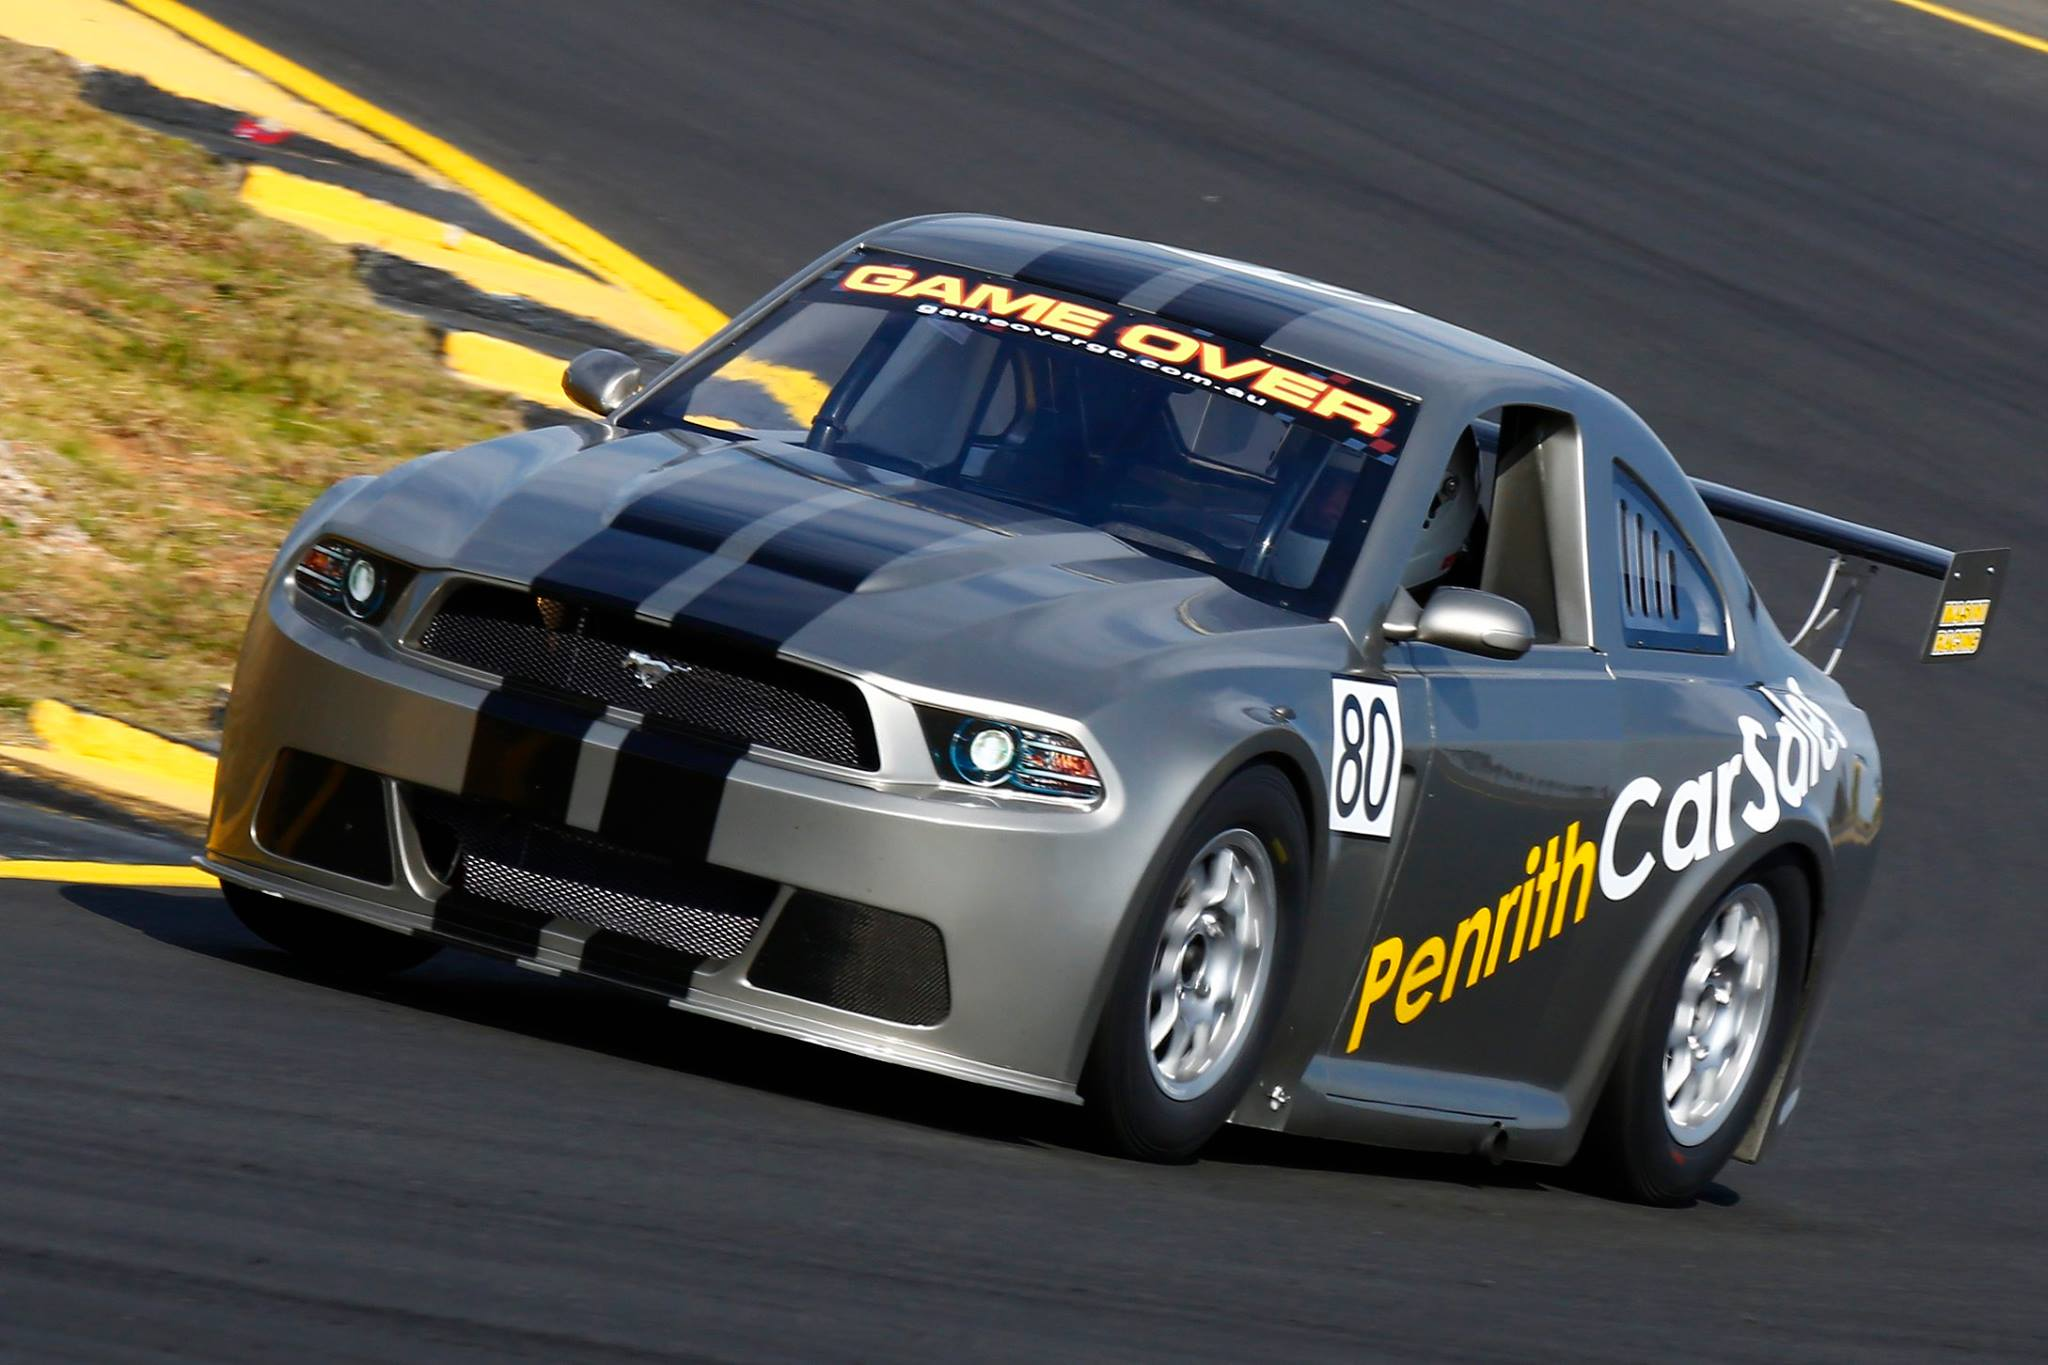 Aussie Racing Cars: A Small Package Full Of Big Fun - Moto Networks